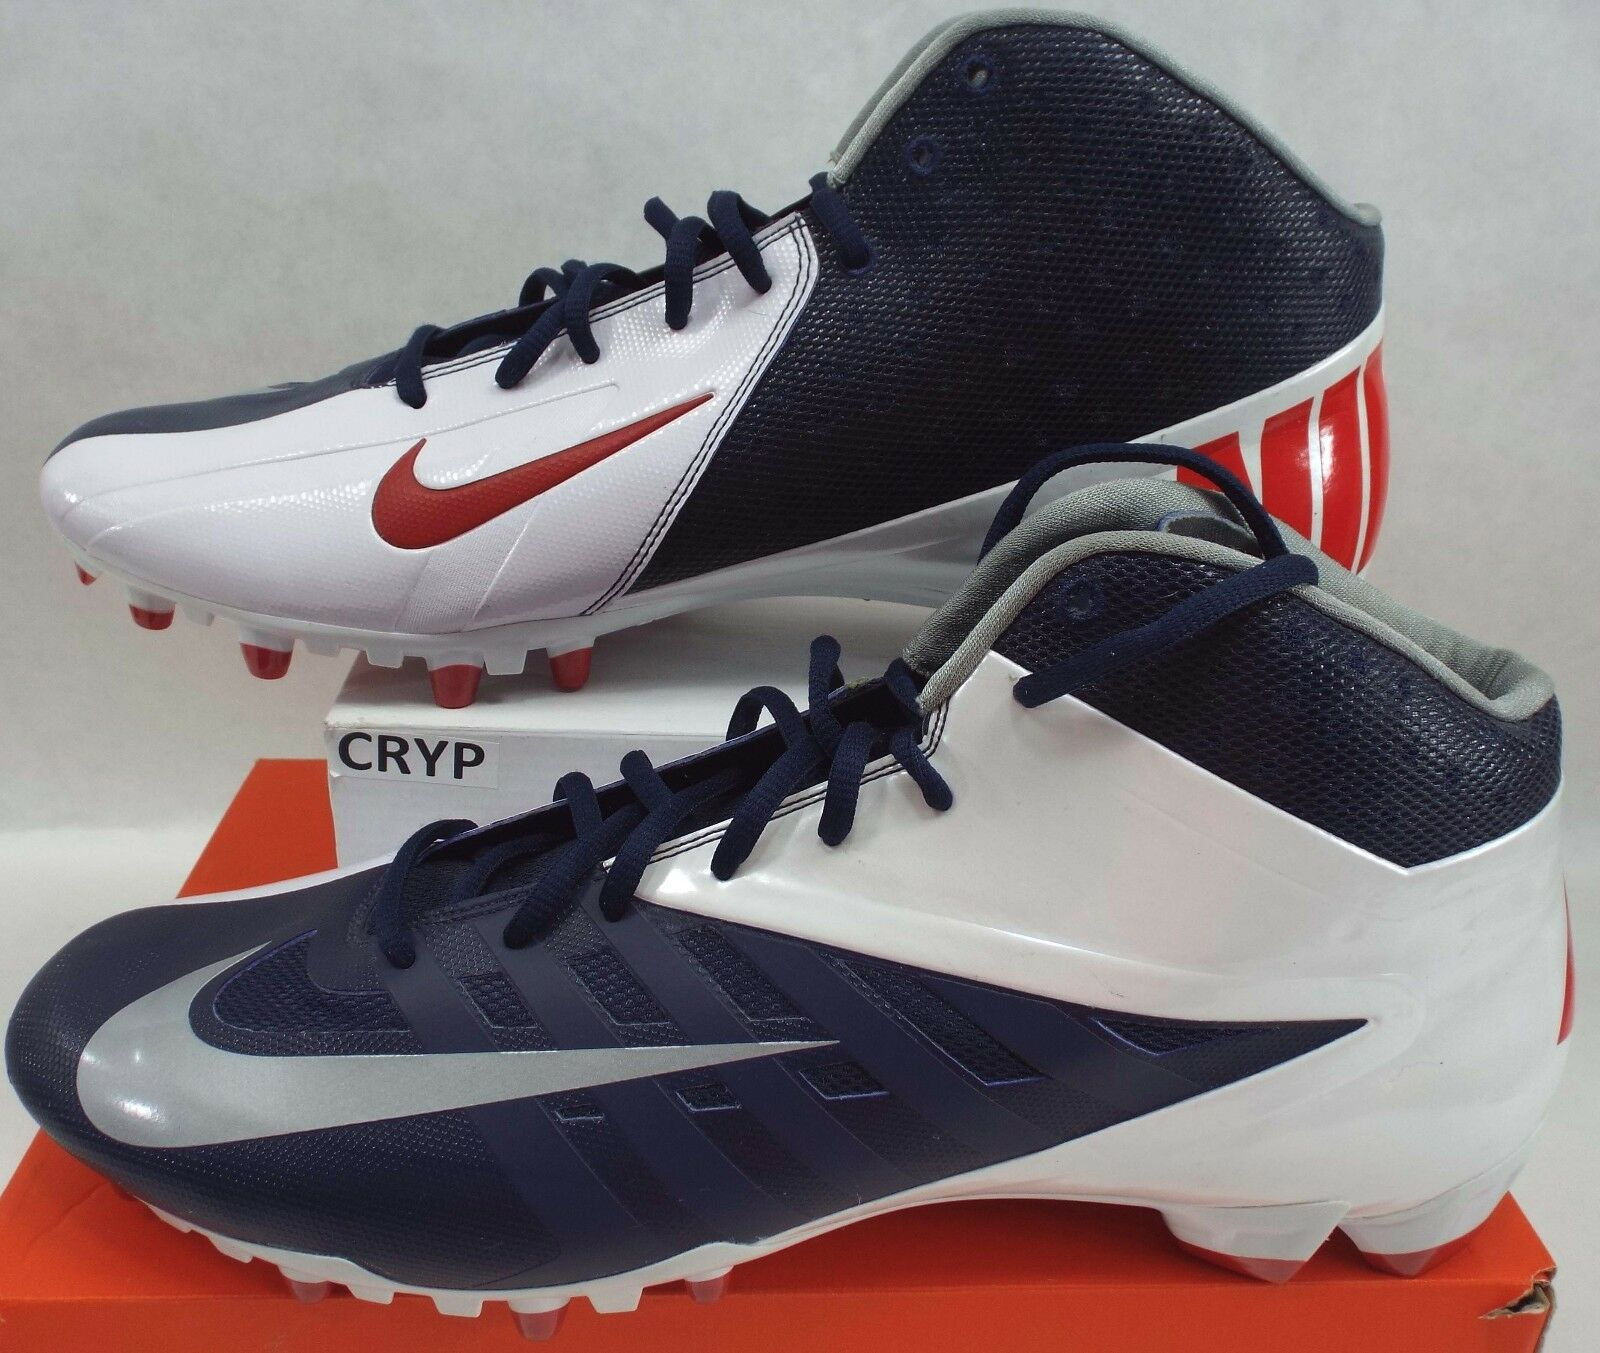 New Mens 16 Nike Vapor Pro 3/4 Navy Red White Patriots Cleats 543924-419 Shoes